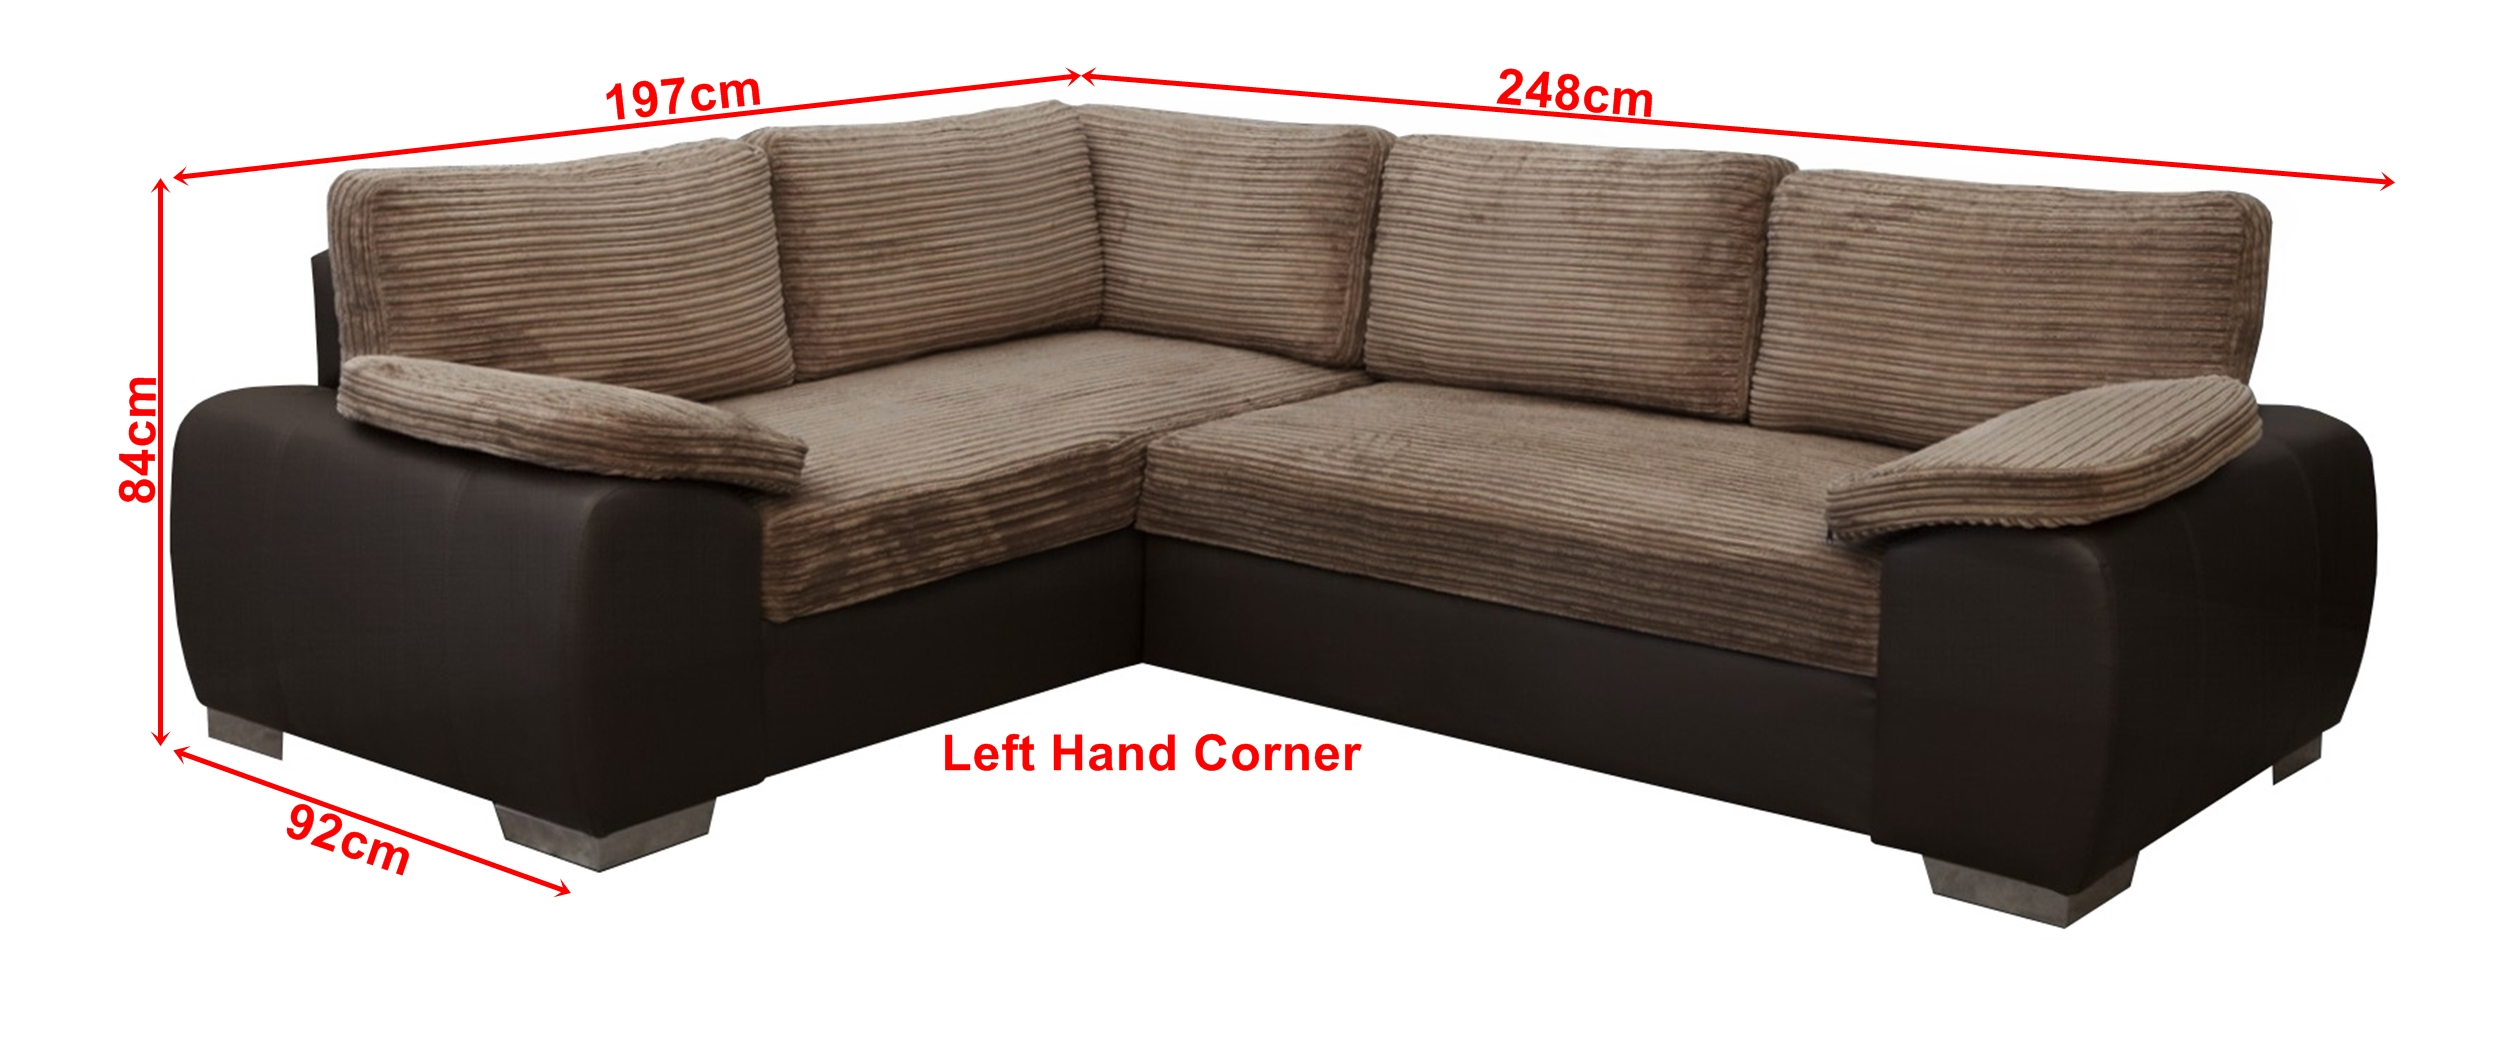 Corner Sofa Bed Jumbo Cord Details About New Corner Sofa Bed Enzo Brown Jumbo Cord Fabric Leather With Storage Left Hand